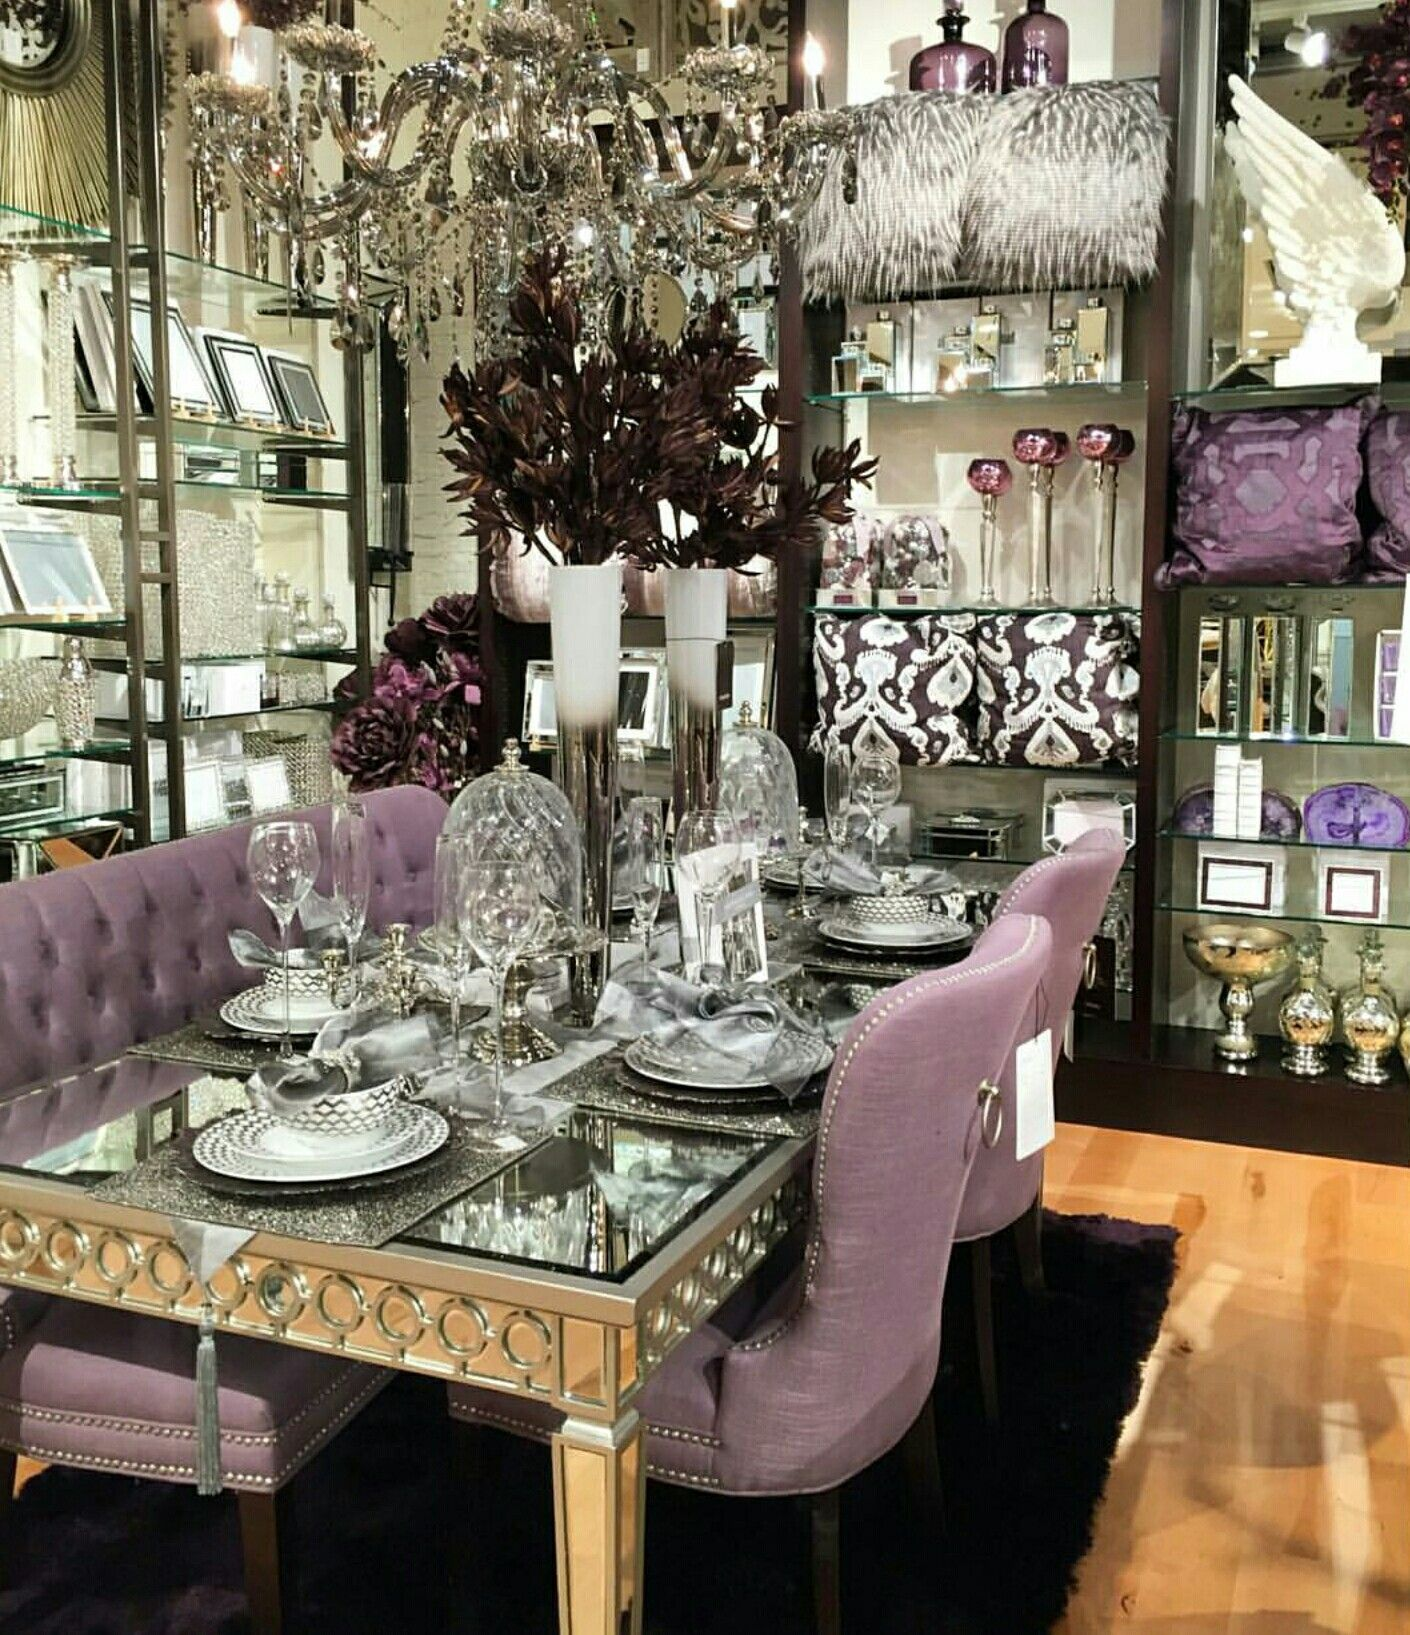 Credits Zgallerie What A Beautiful Table And Settings Beautiful Dining Room Decor Dining Room Table Decor Dinning Room Decor